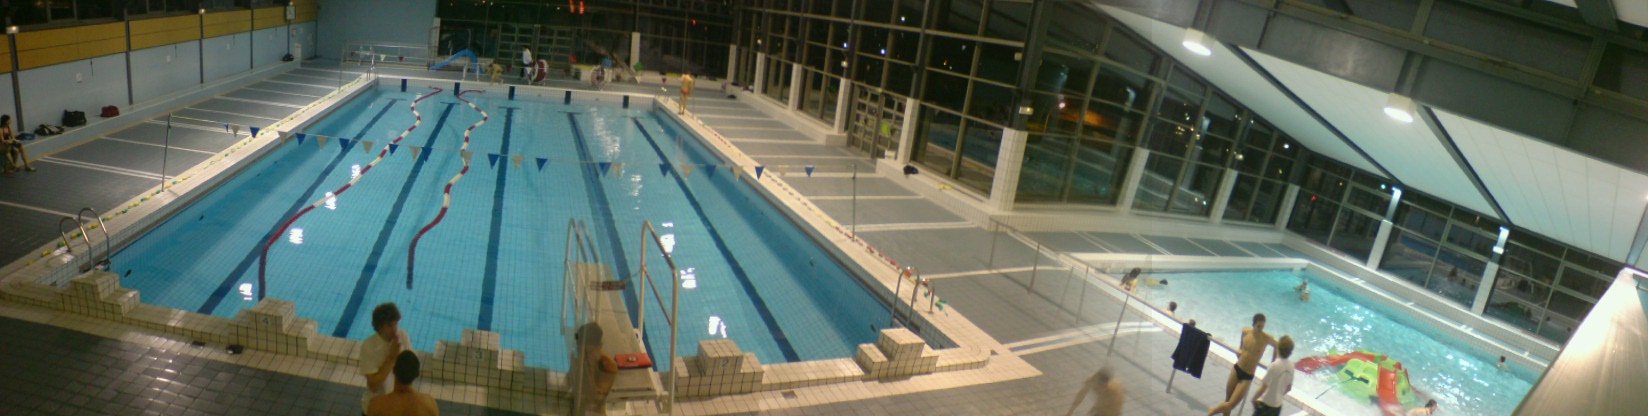 Le club for Piscine mulheim adresse